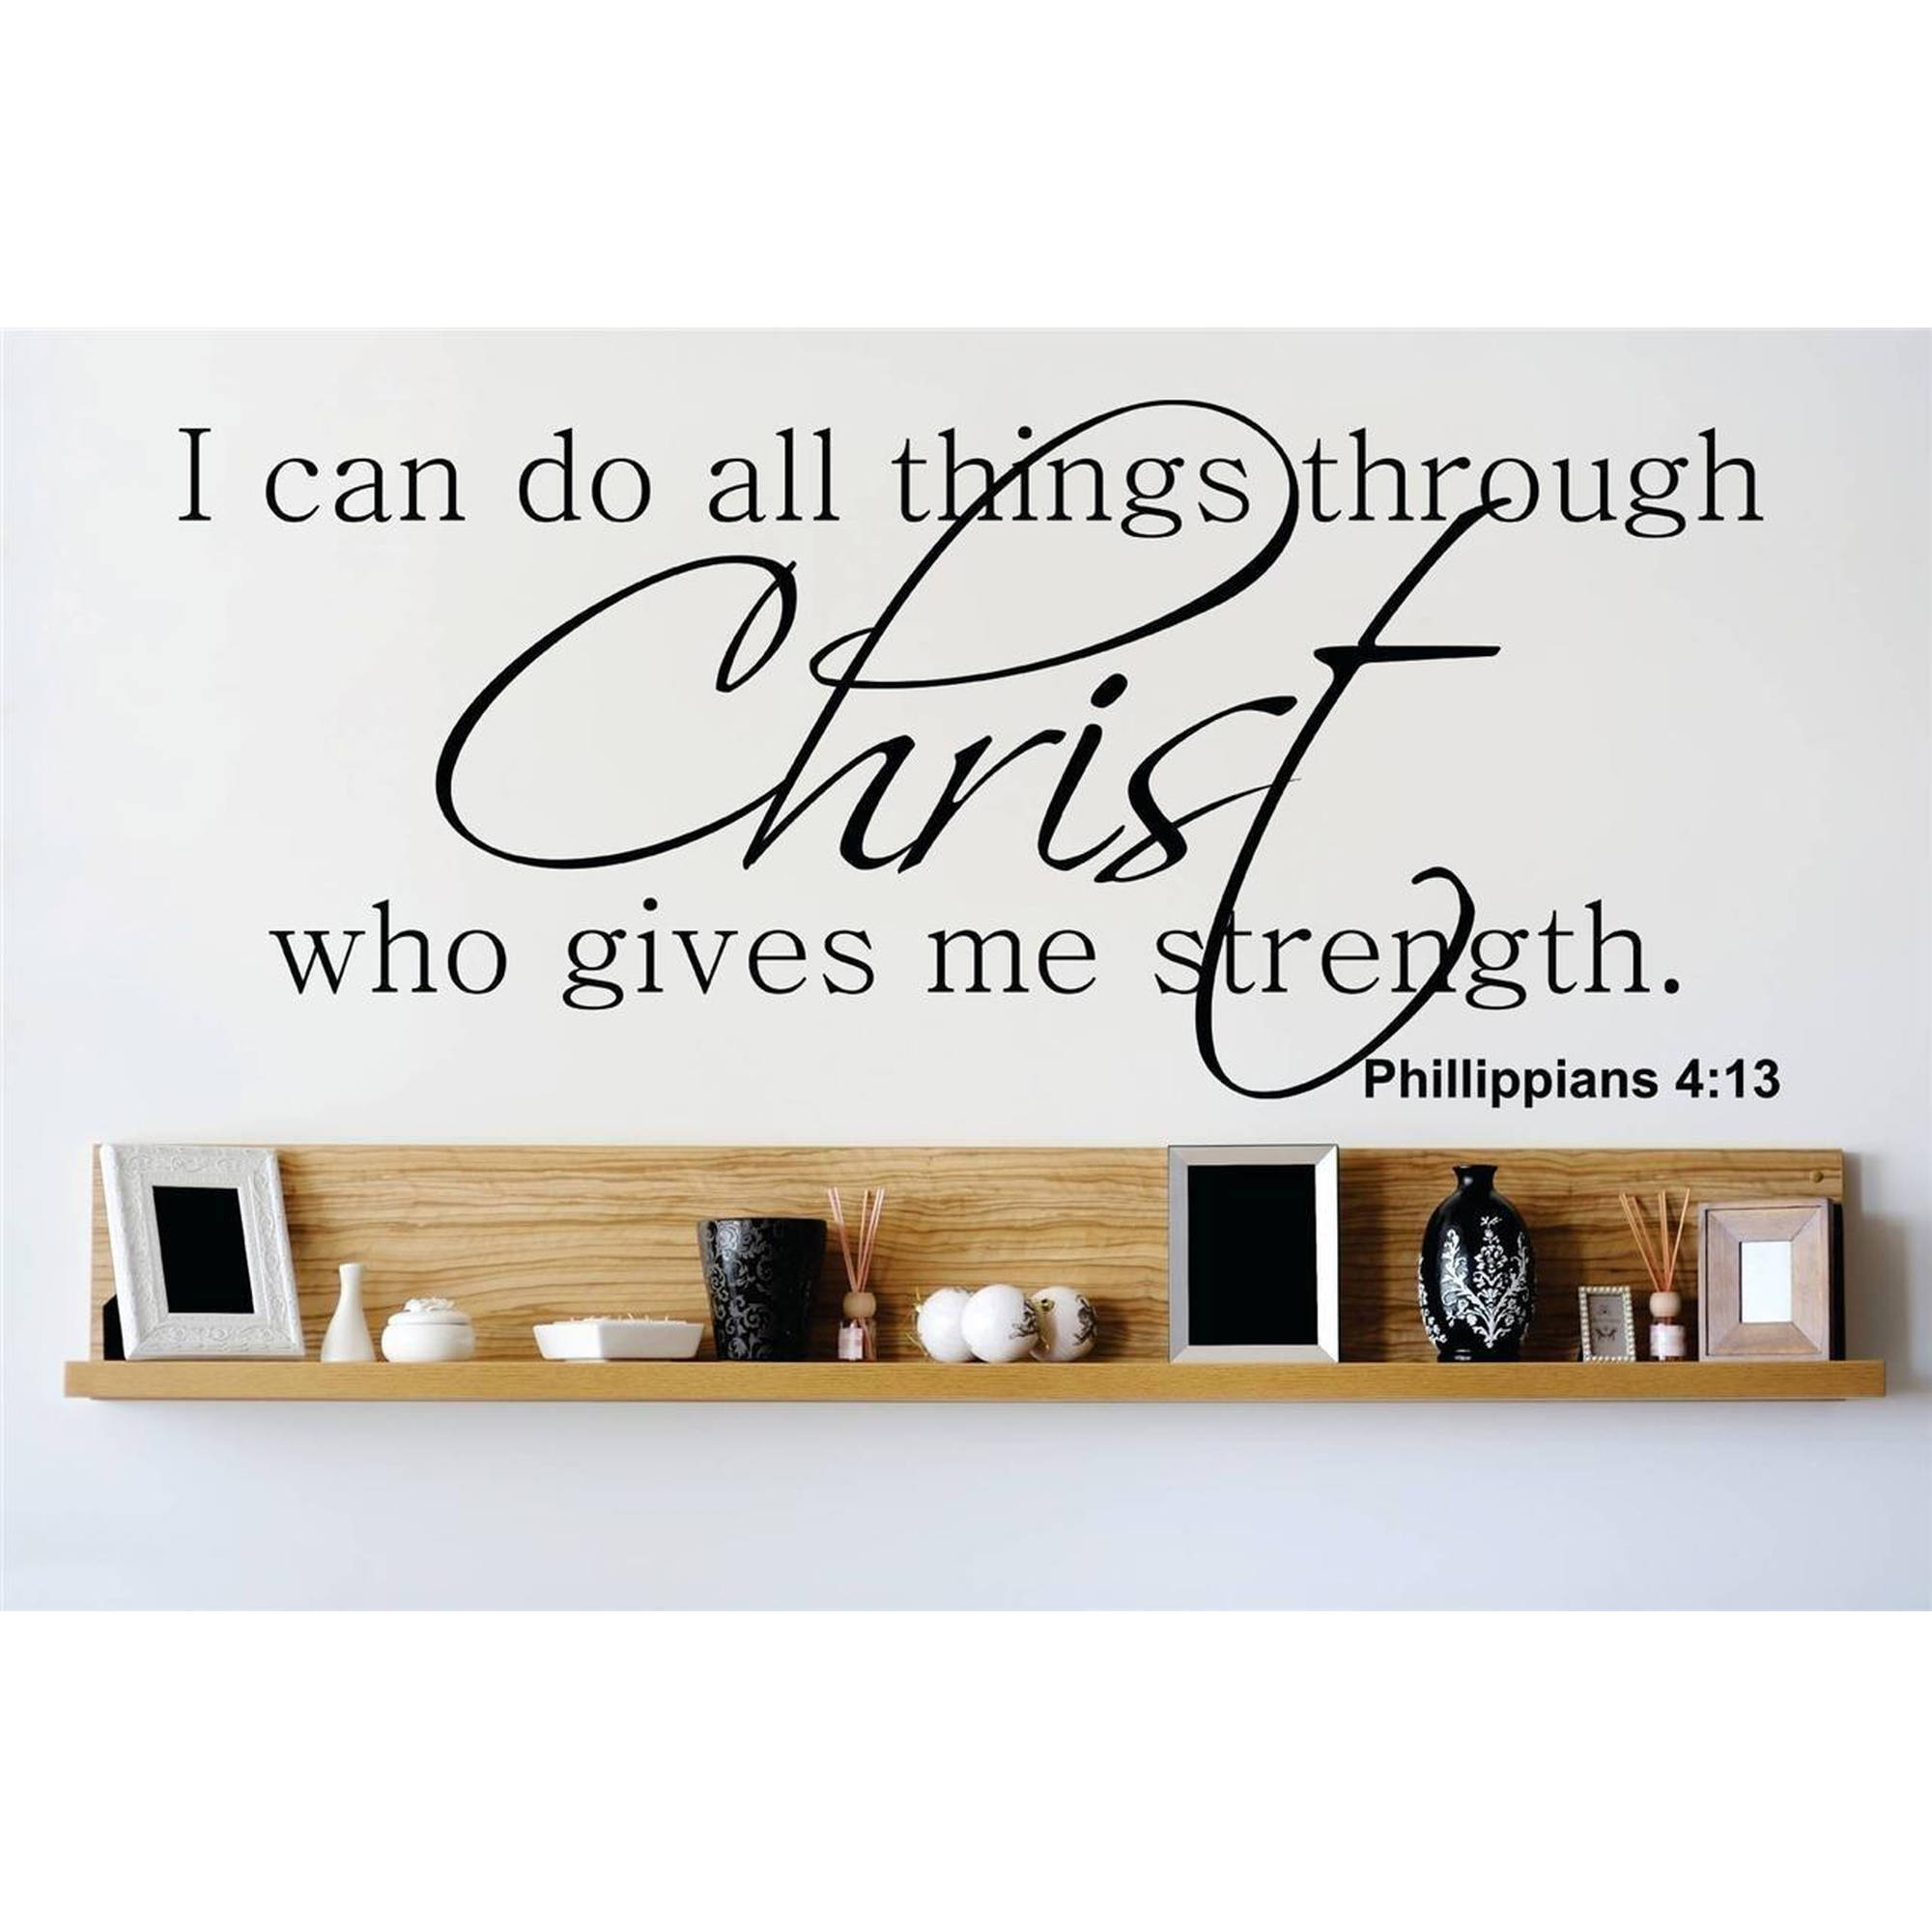 "I Can Do All Things Through Christ Who Give Me Strength. Phillippians 4:13 Bible Quote Wall Decal, 10"" x 20"", Black"